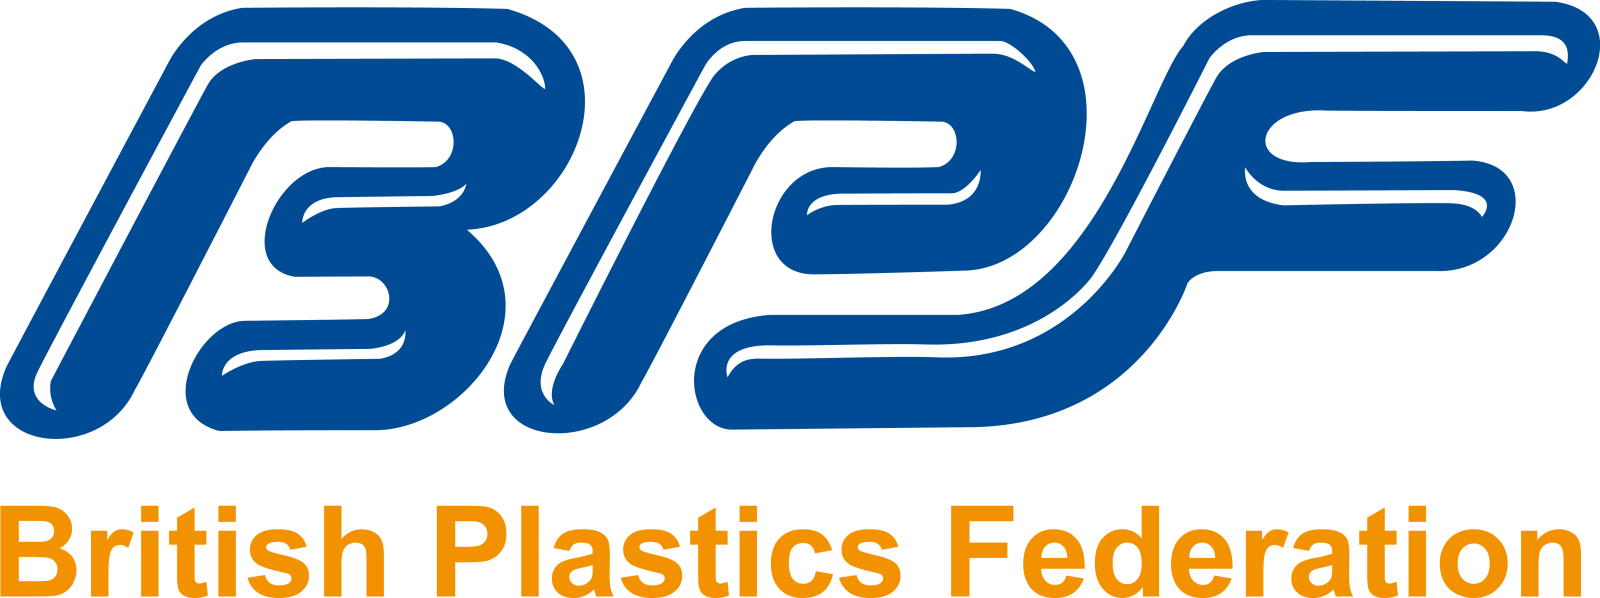 Mailbox Products is a Member of the British Plastics Federation